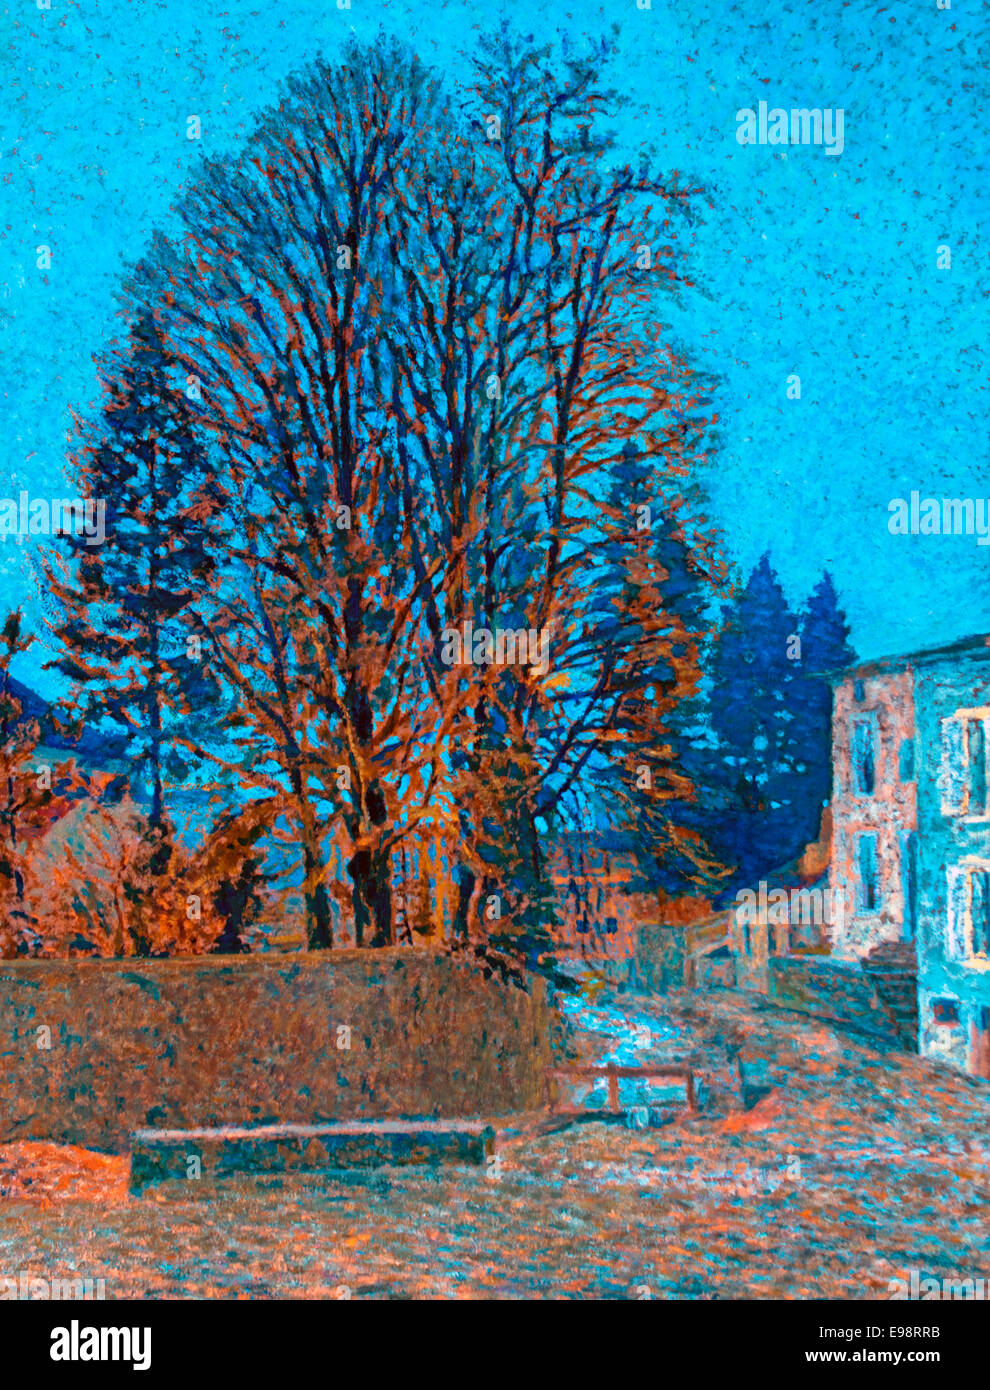 Les grandes ormes - Large elms 1901 Auguste Michel Colle 1872-1949 France French - Stock Image